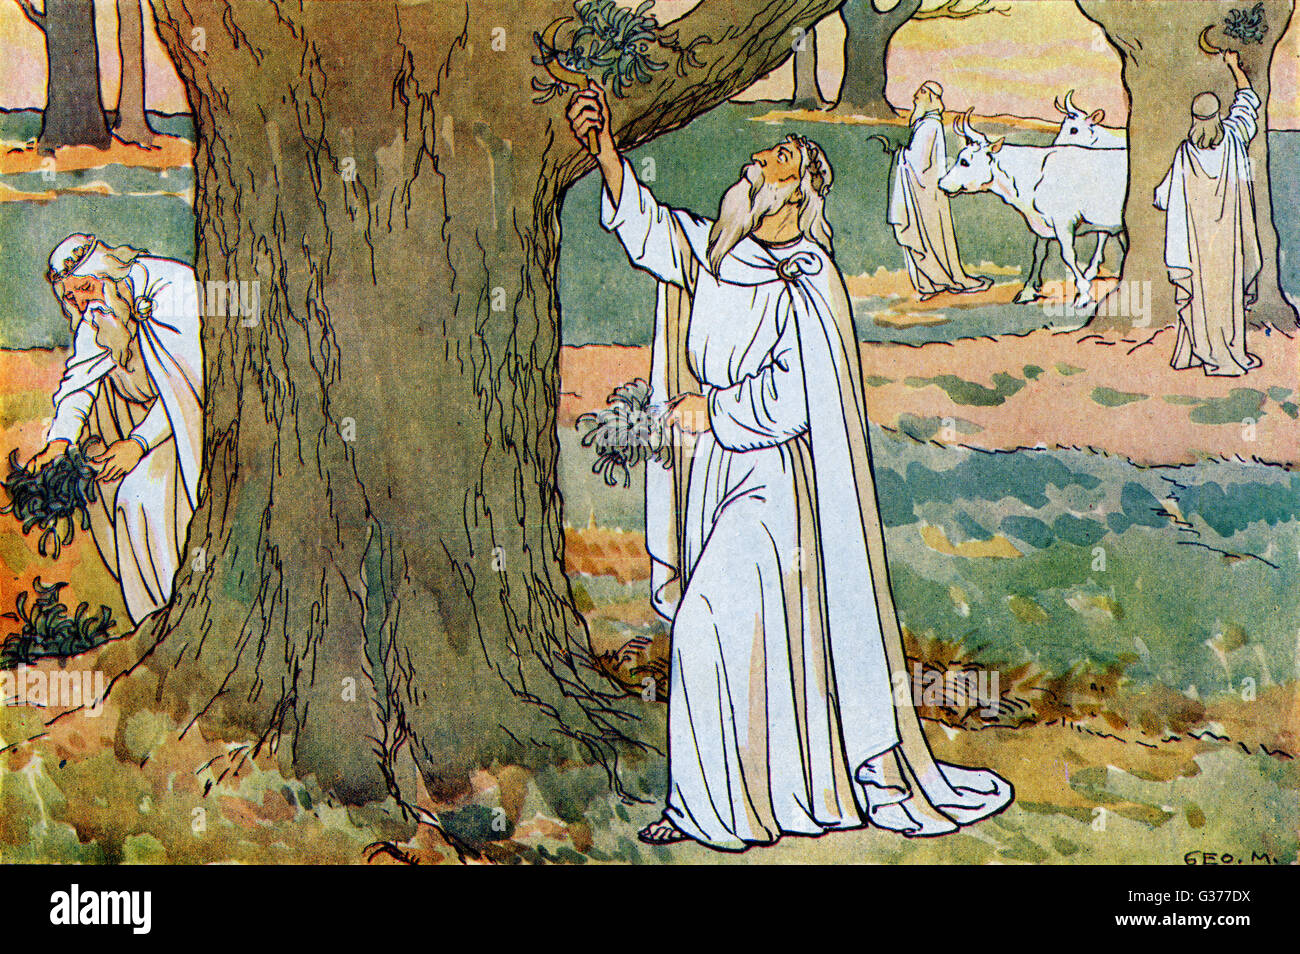 The Druids were highly respected by the Britons because of their wisdom and used to collect mistletoe to give to - Stock Image